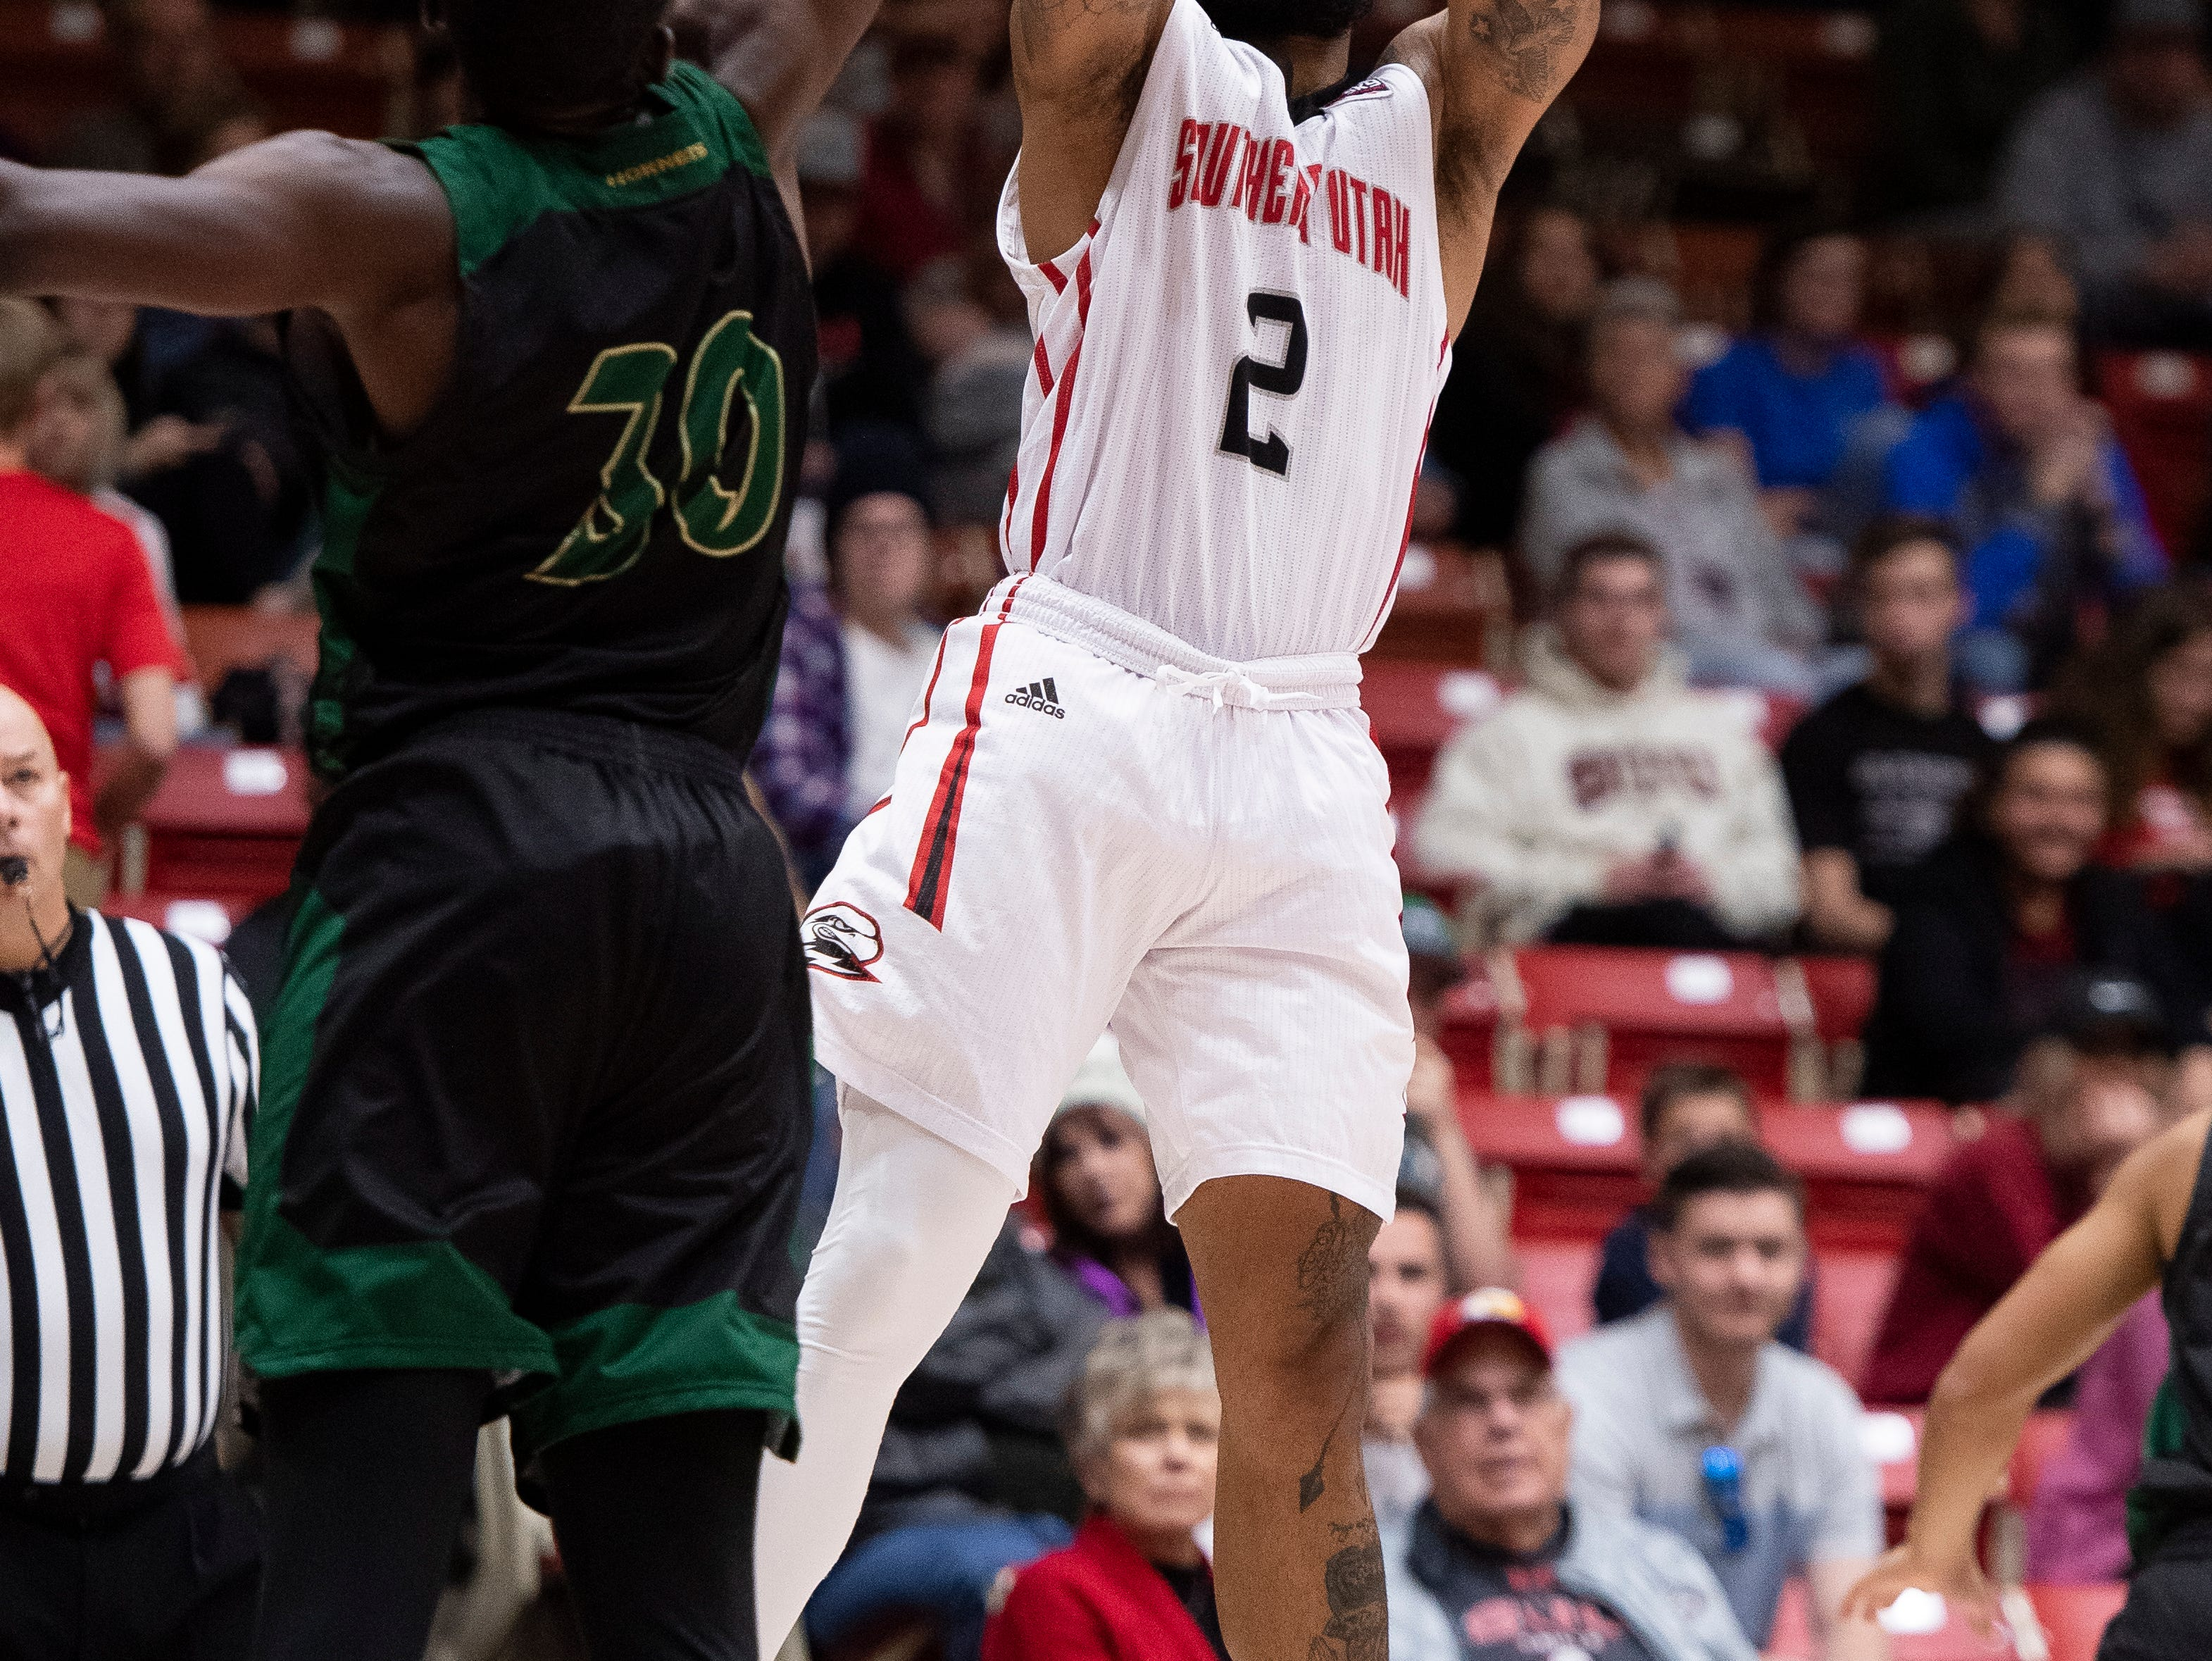 Southern Utah University senior Brandon Better (2) sinks a three-point basket against Sacramento State in the America First Event Center Saturday, January 19, 2019.